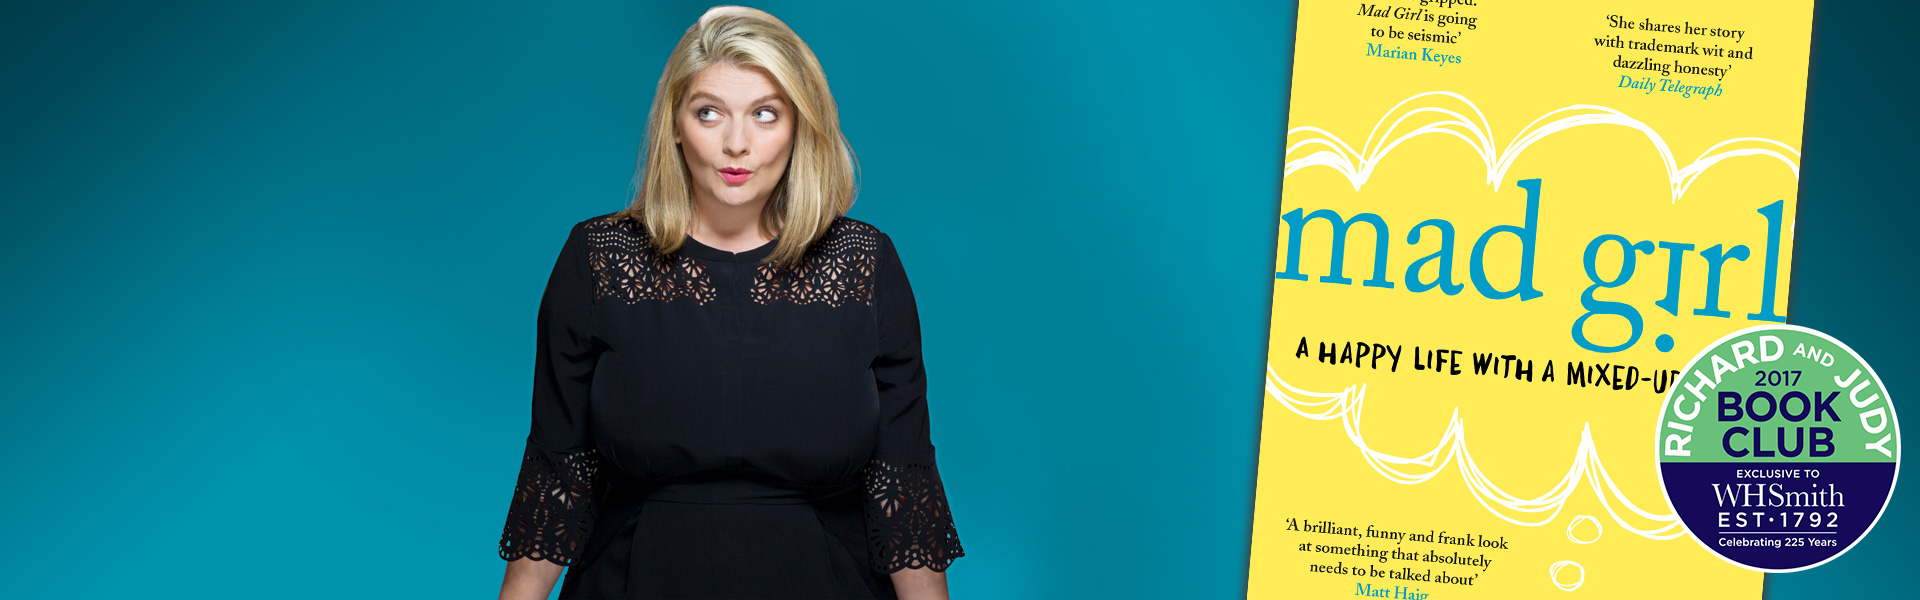 A Note From Bryony Gordon on Mad Girl